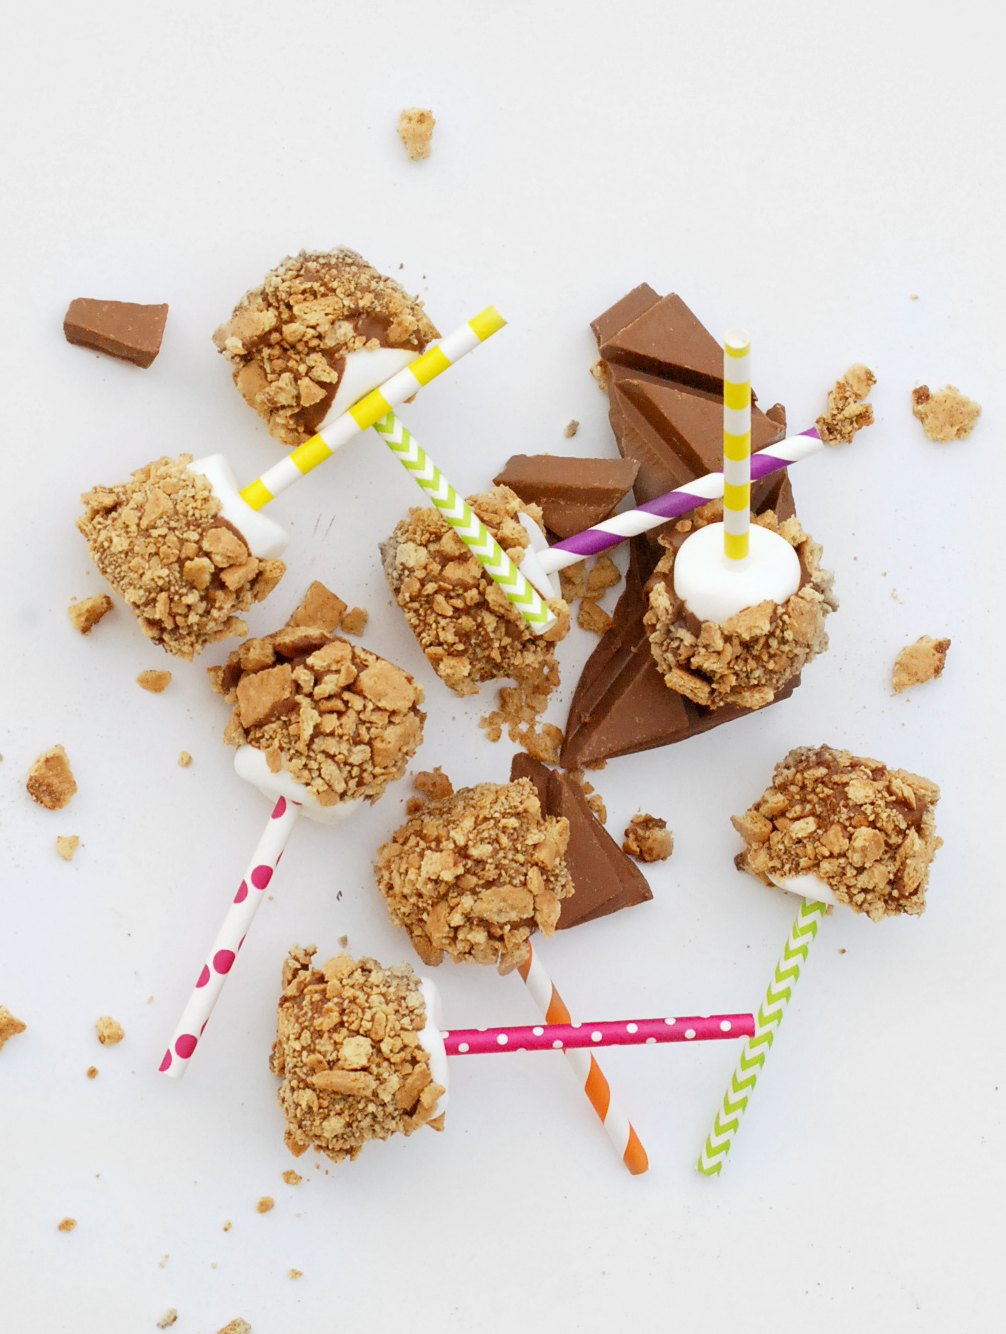 Who doesn't love s'mores?? These s'mores pops taste just like the original, but easy and portable!